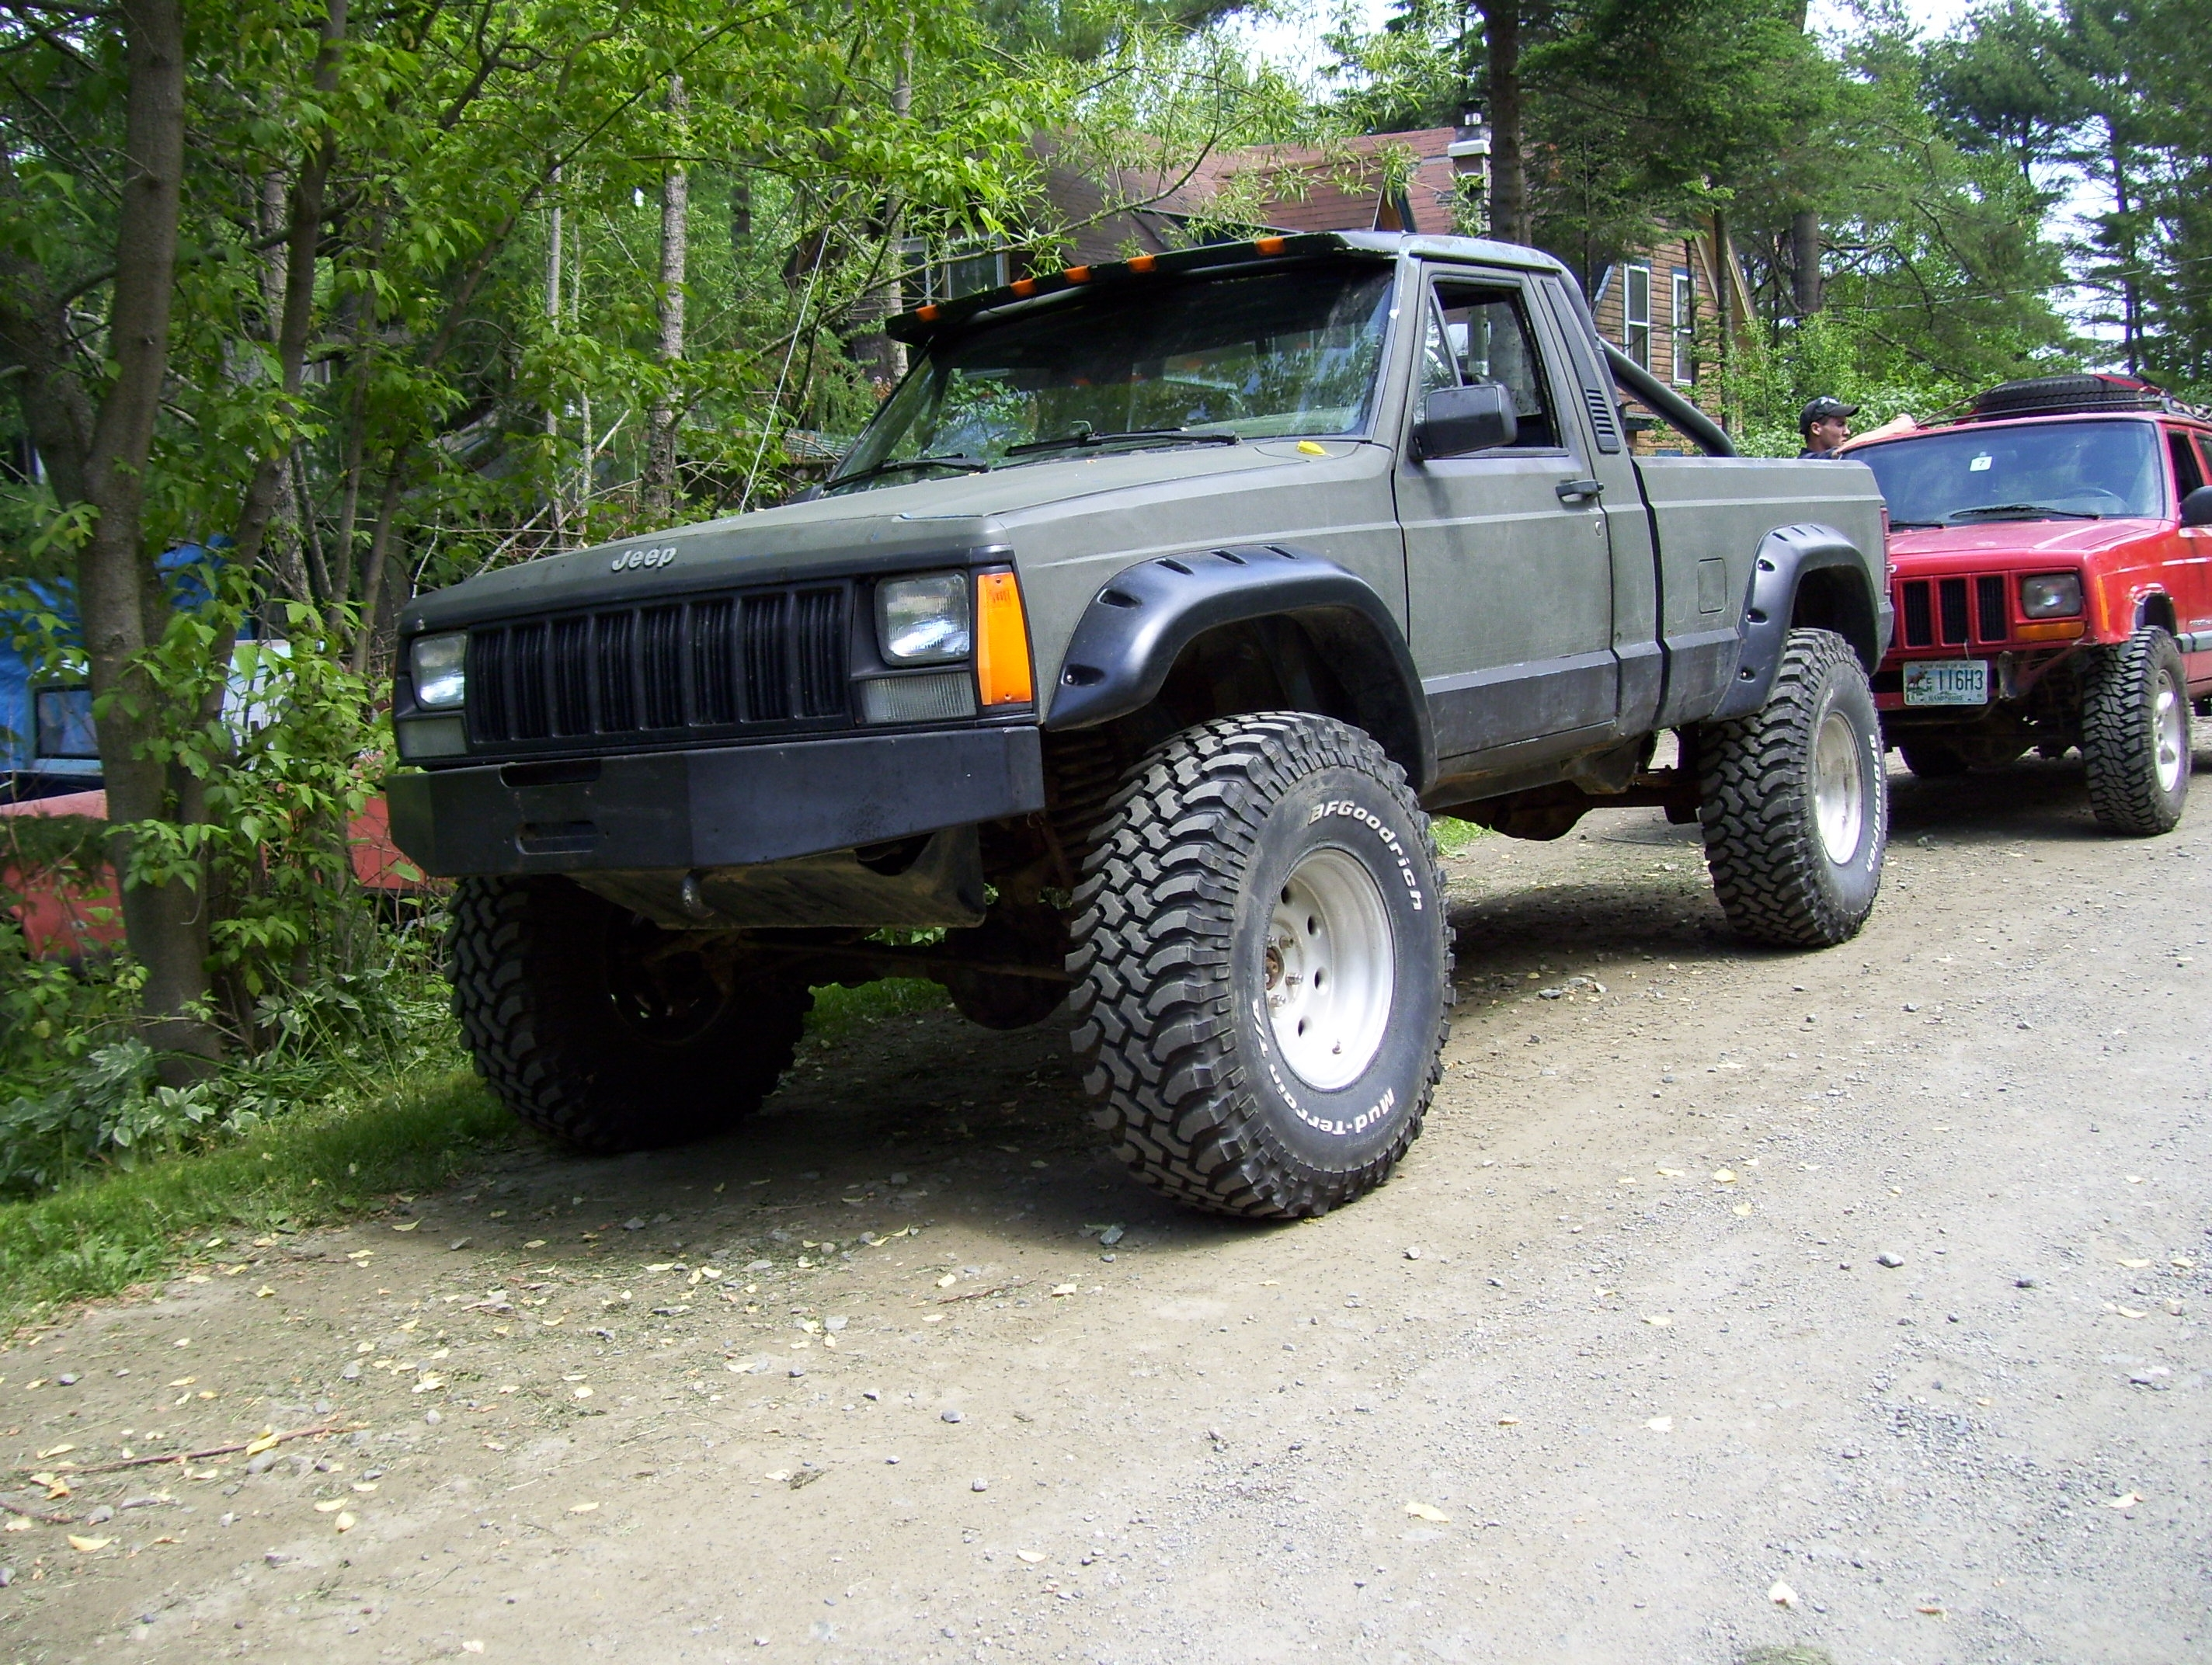 chelseas offroad jeep s image sale for clayton chelsea comanche